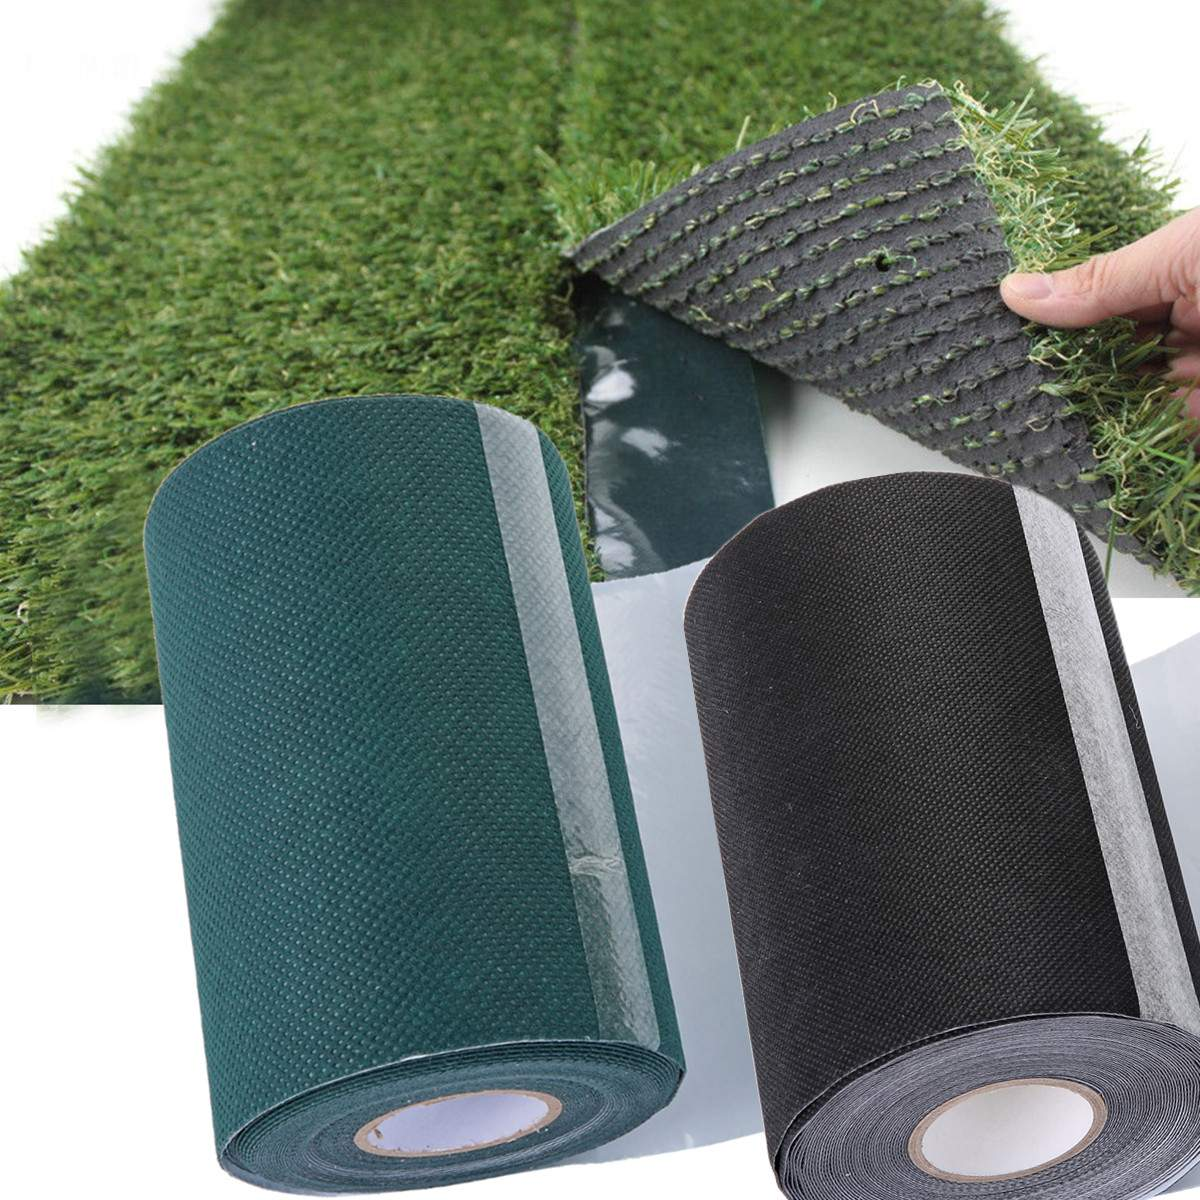 10mx15cm Large DIY Artificial Grass Jointing Self Adhesive Tape Synthetic Grass Turf Lawn Carpet Seaming Tape Green Home Decor